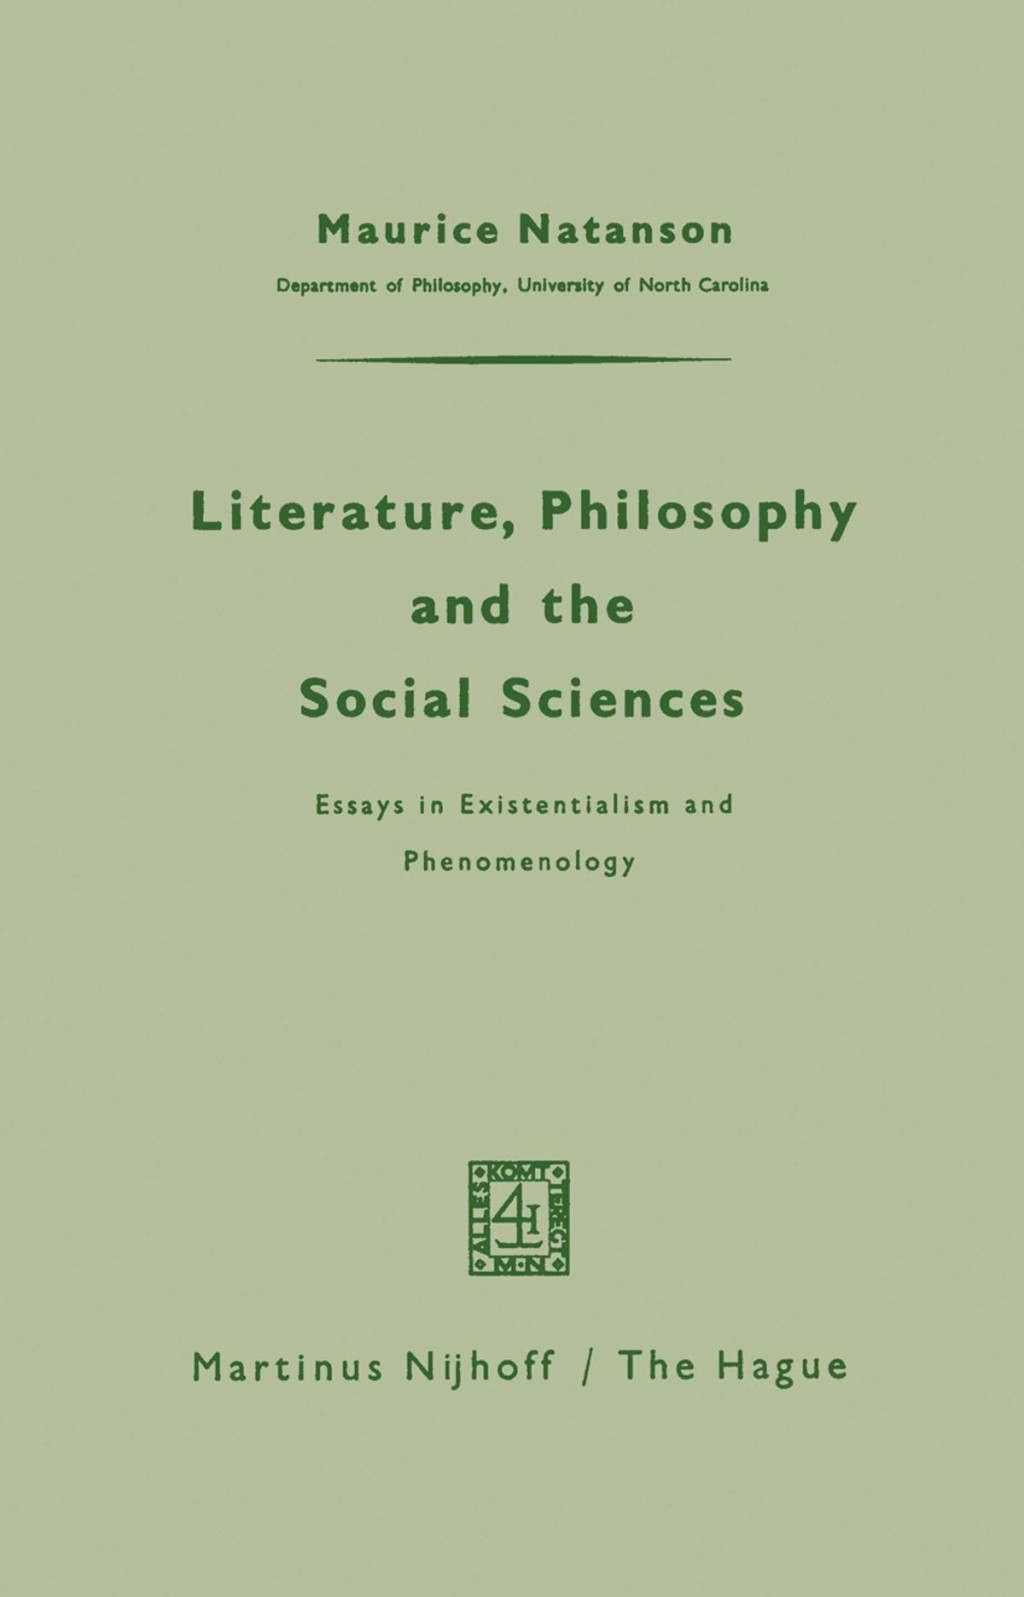 009 Literature Philosophy And The Social Sciences Essay Example Essays In Outstanding Existentialism Sartre Pdf Jean Paul Large